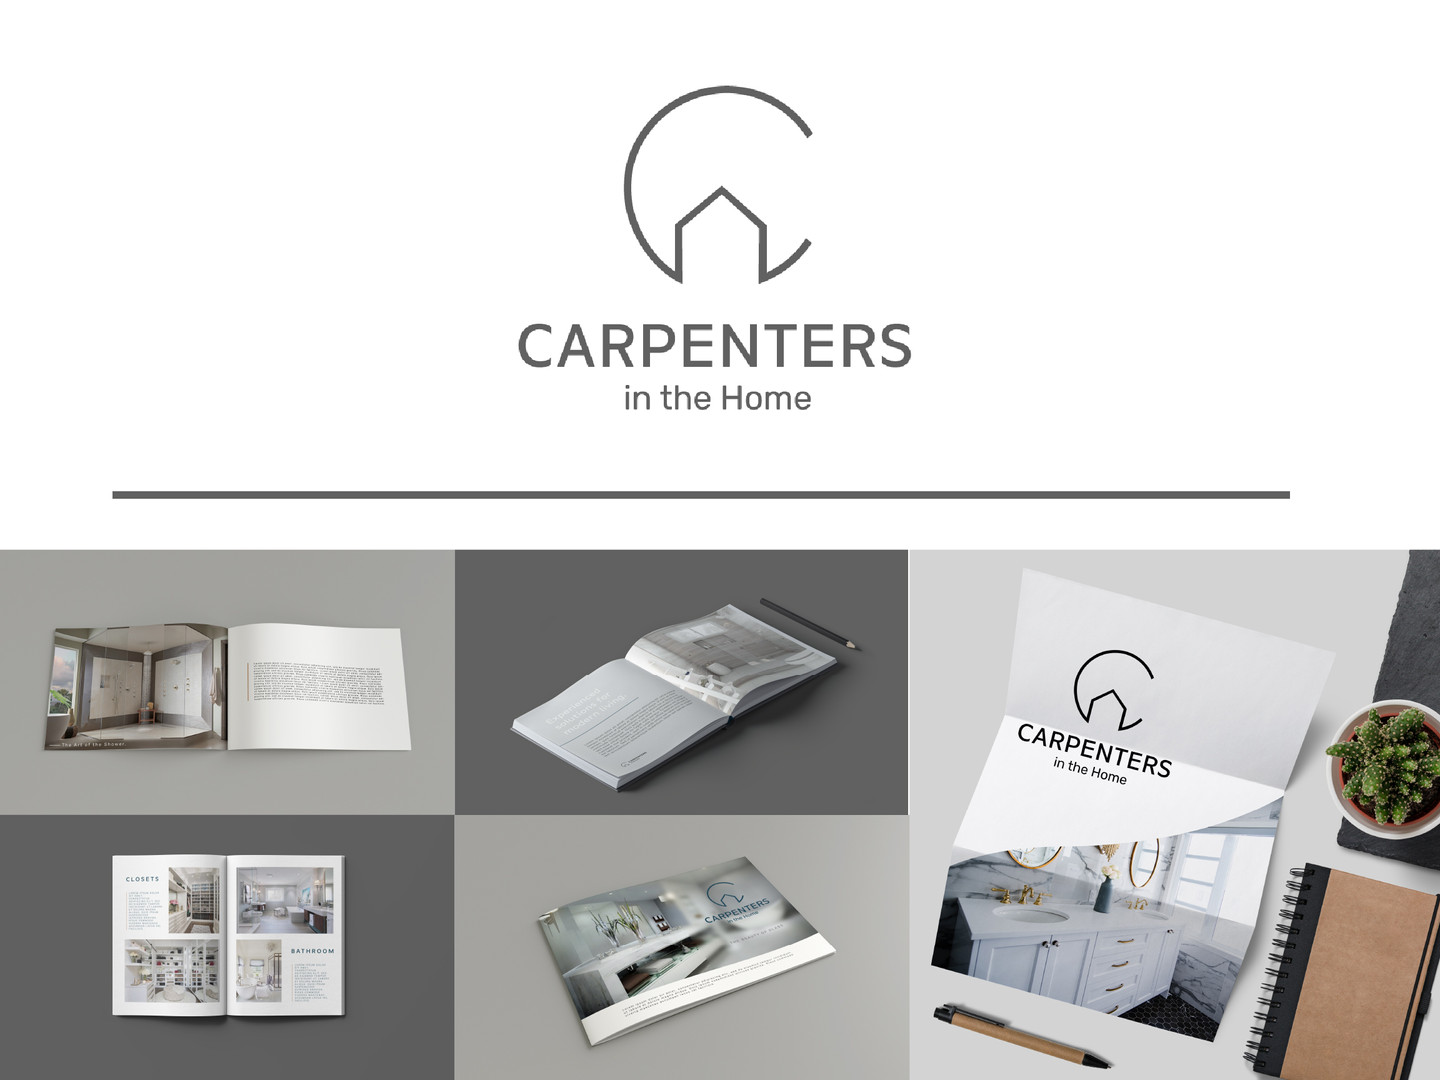 Carpenters in the Home